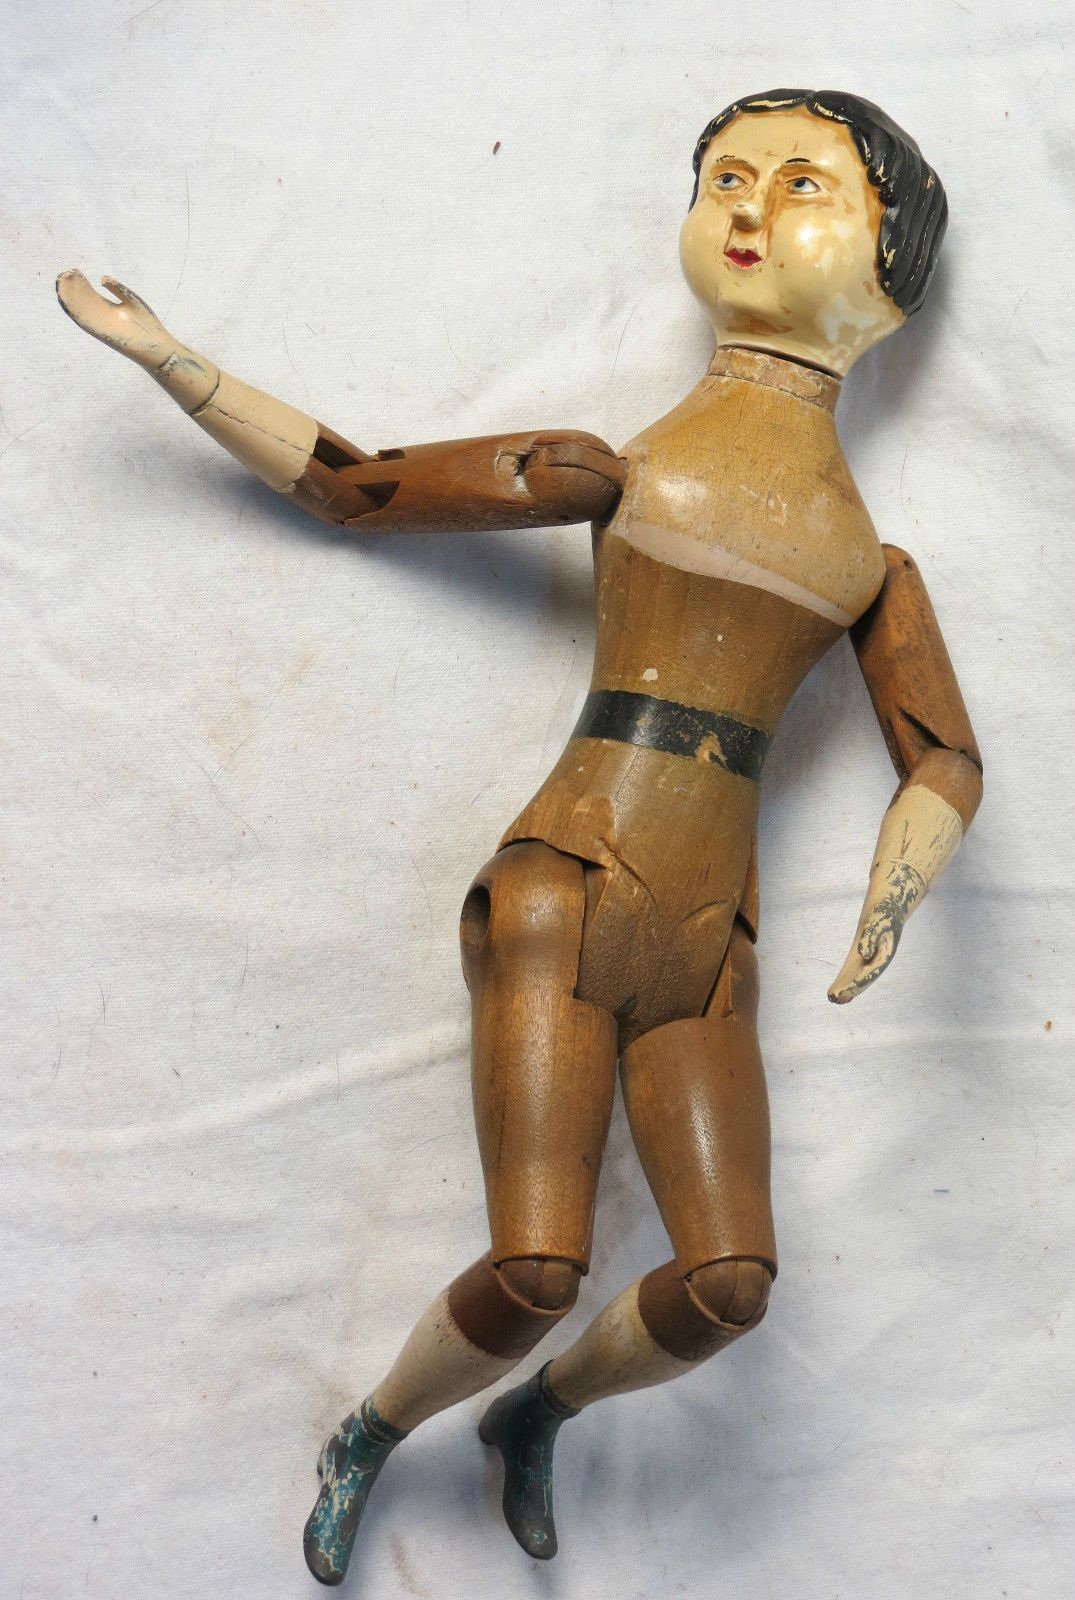 Antique Wooden Doll W Metal Hands And Legs Springfield Vt 1800 S Ebay